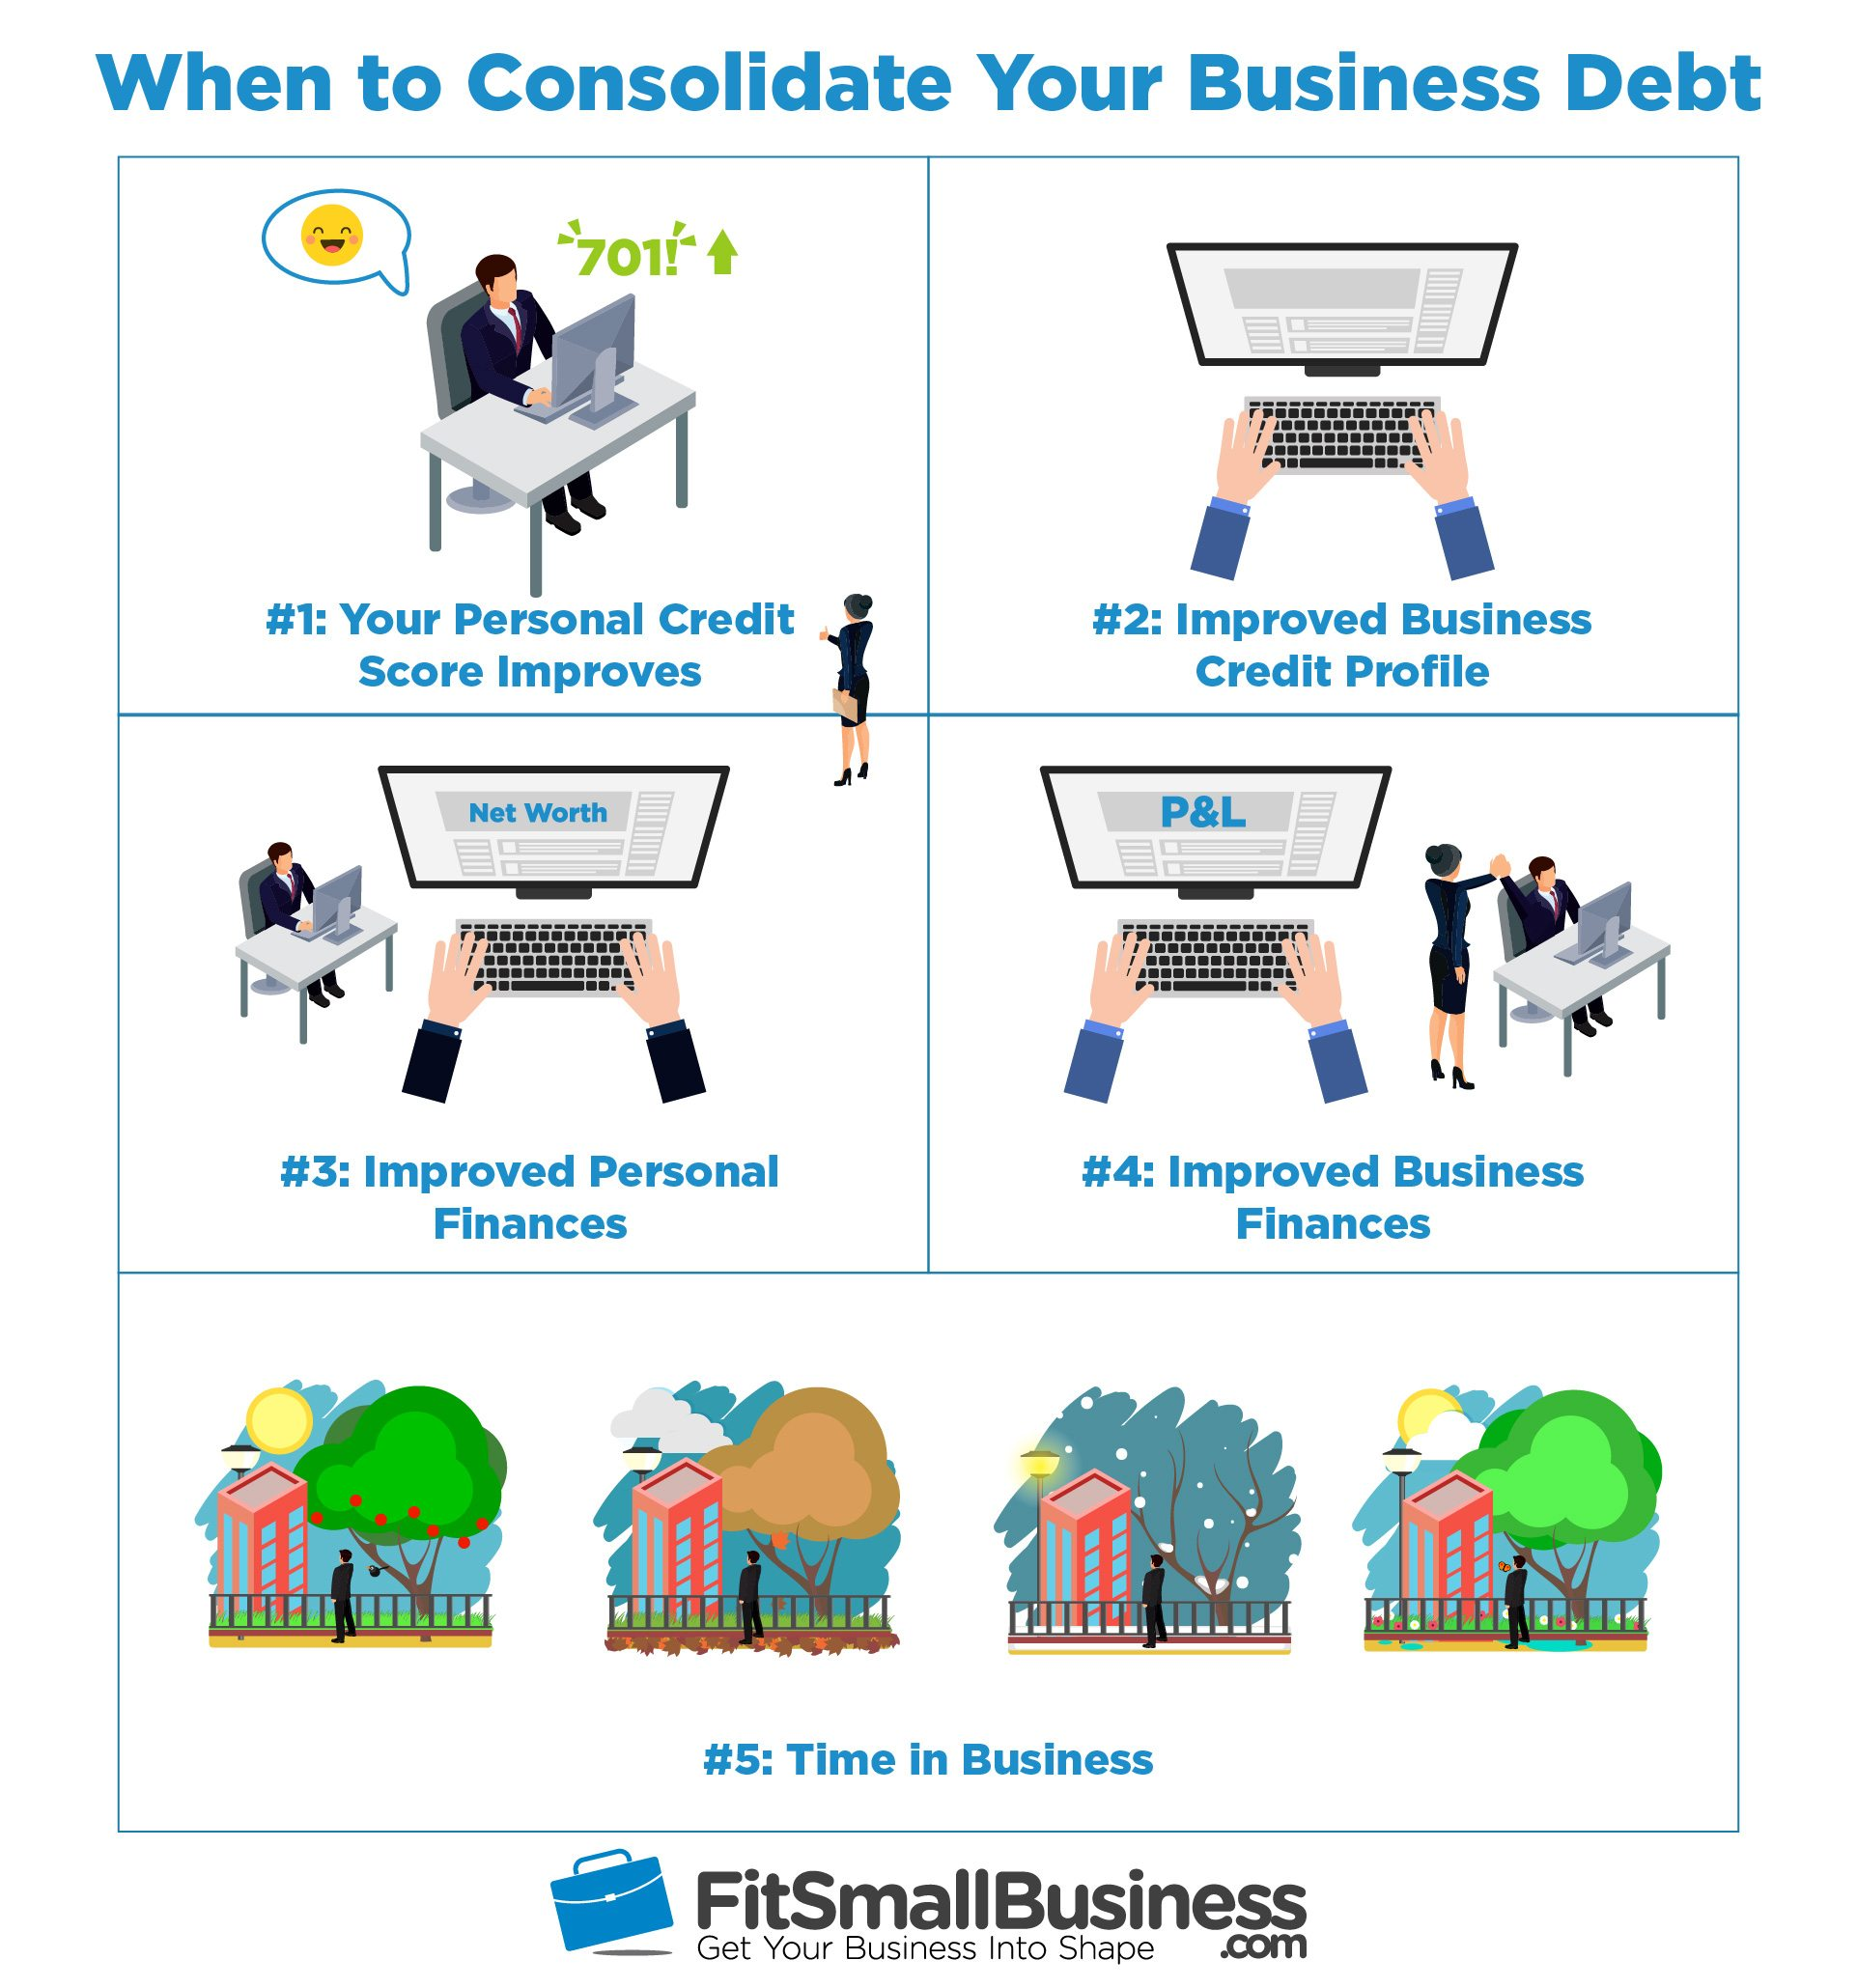 A quick guide to consolidating business debt